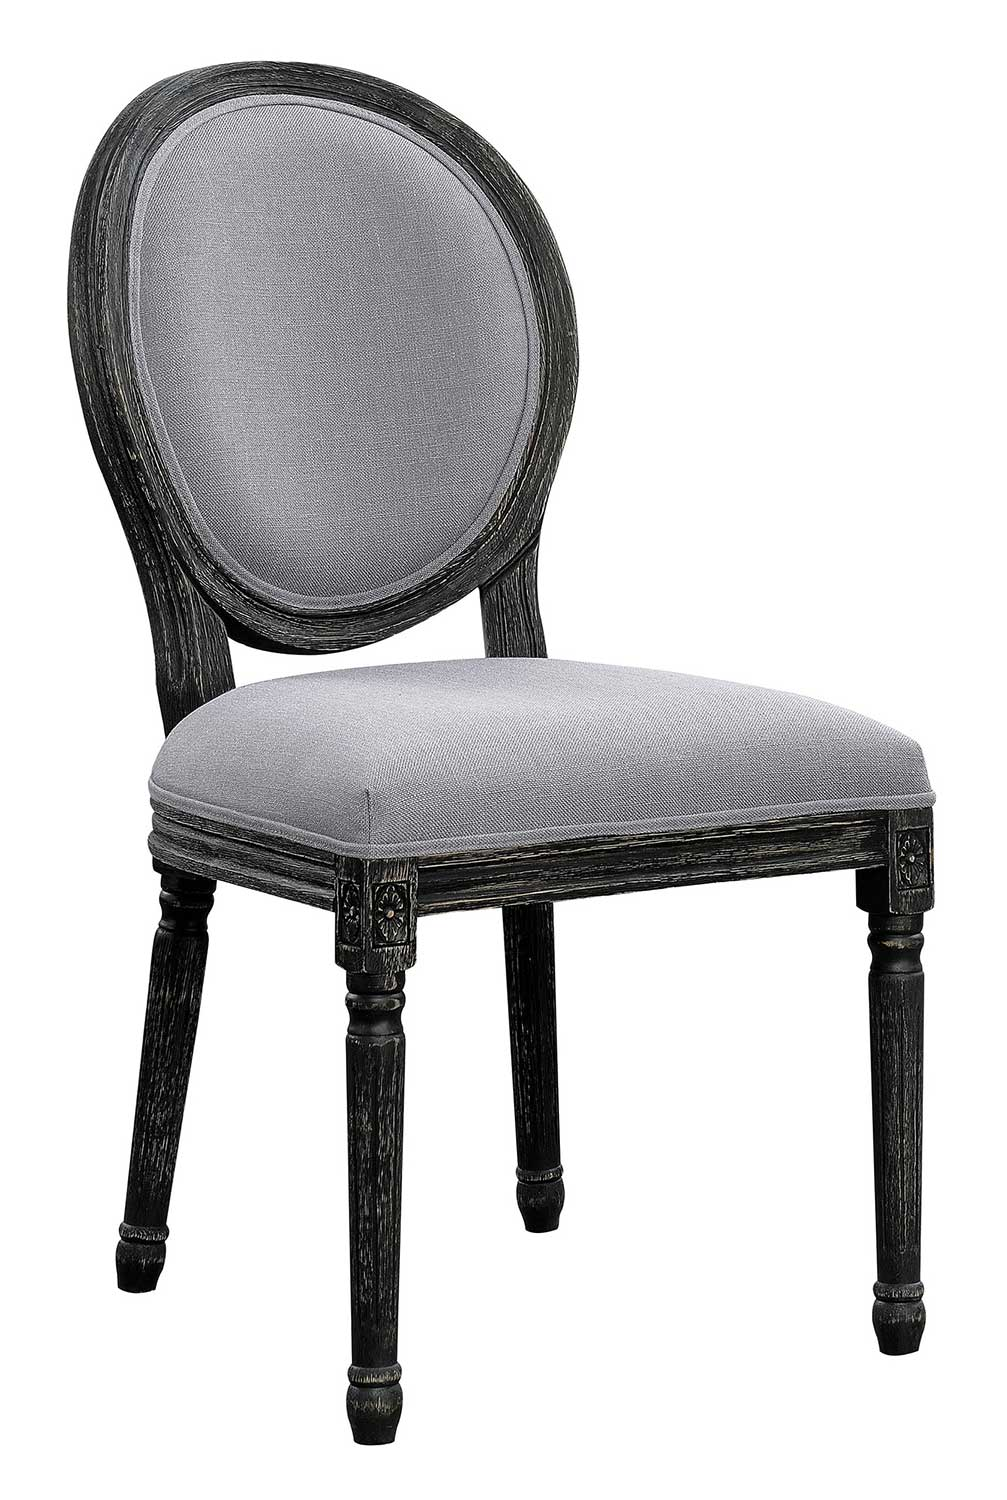 Coaster Dayton Side Chair - Antique Black/Grey